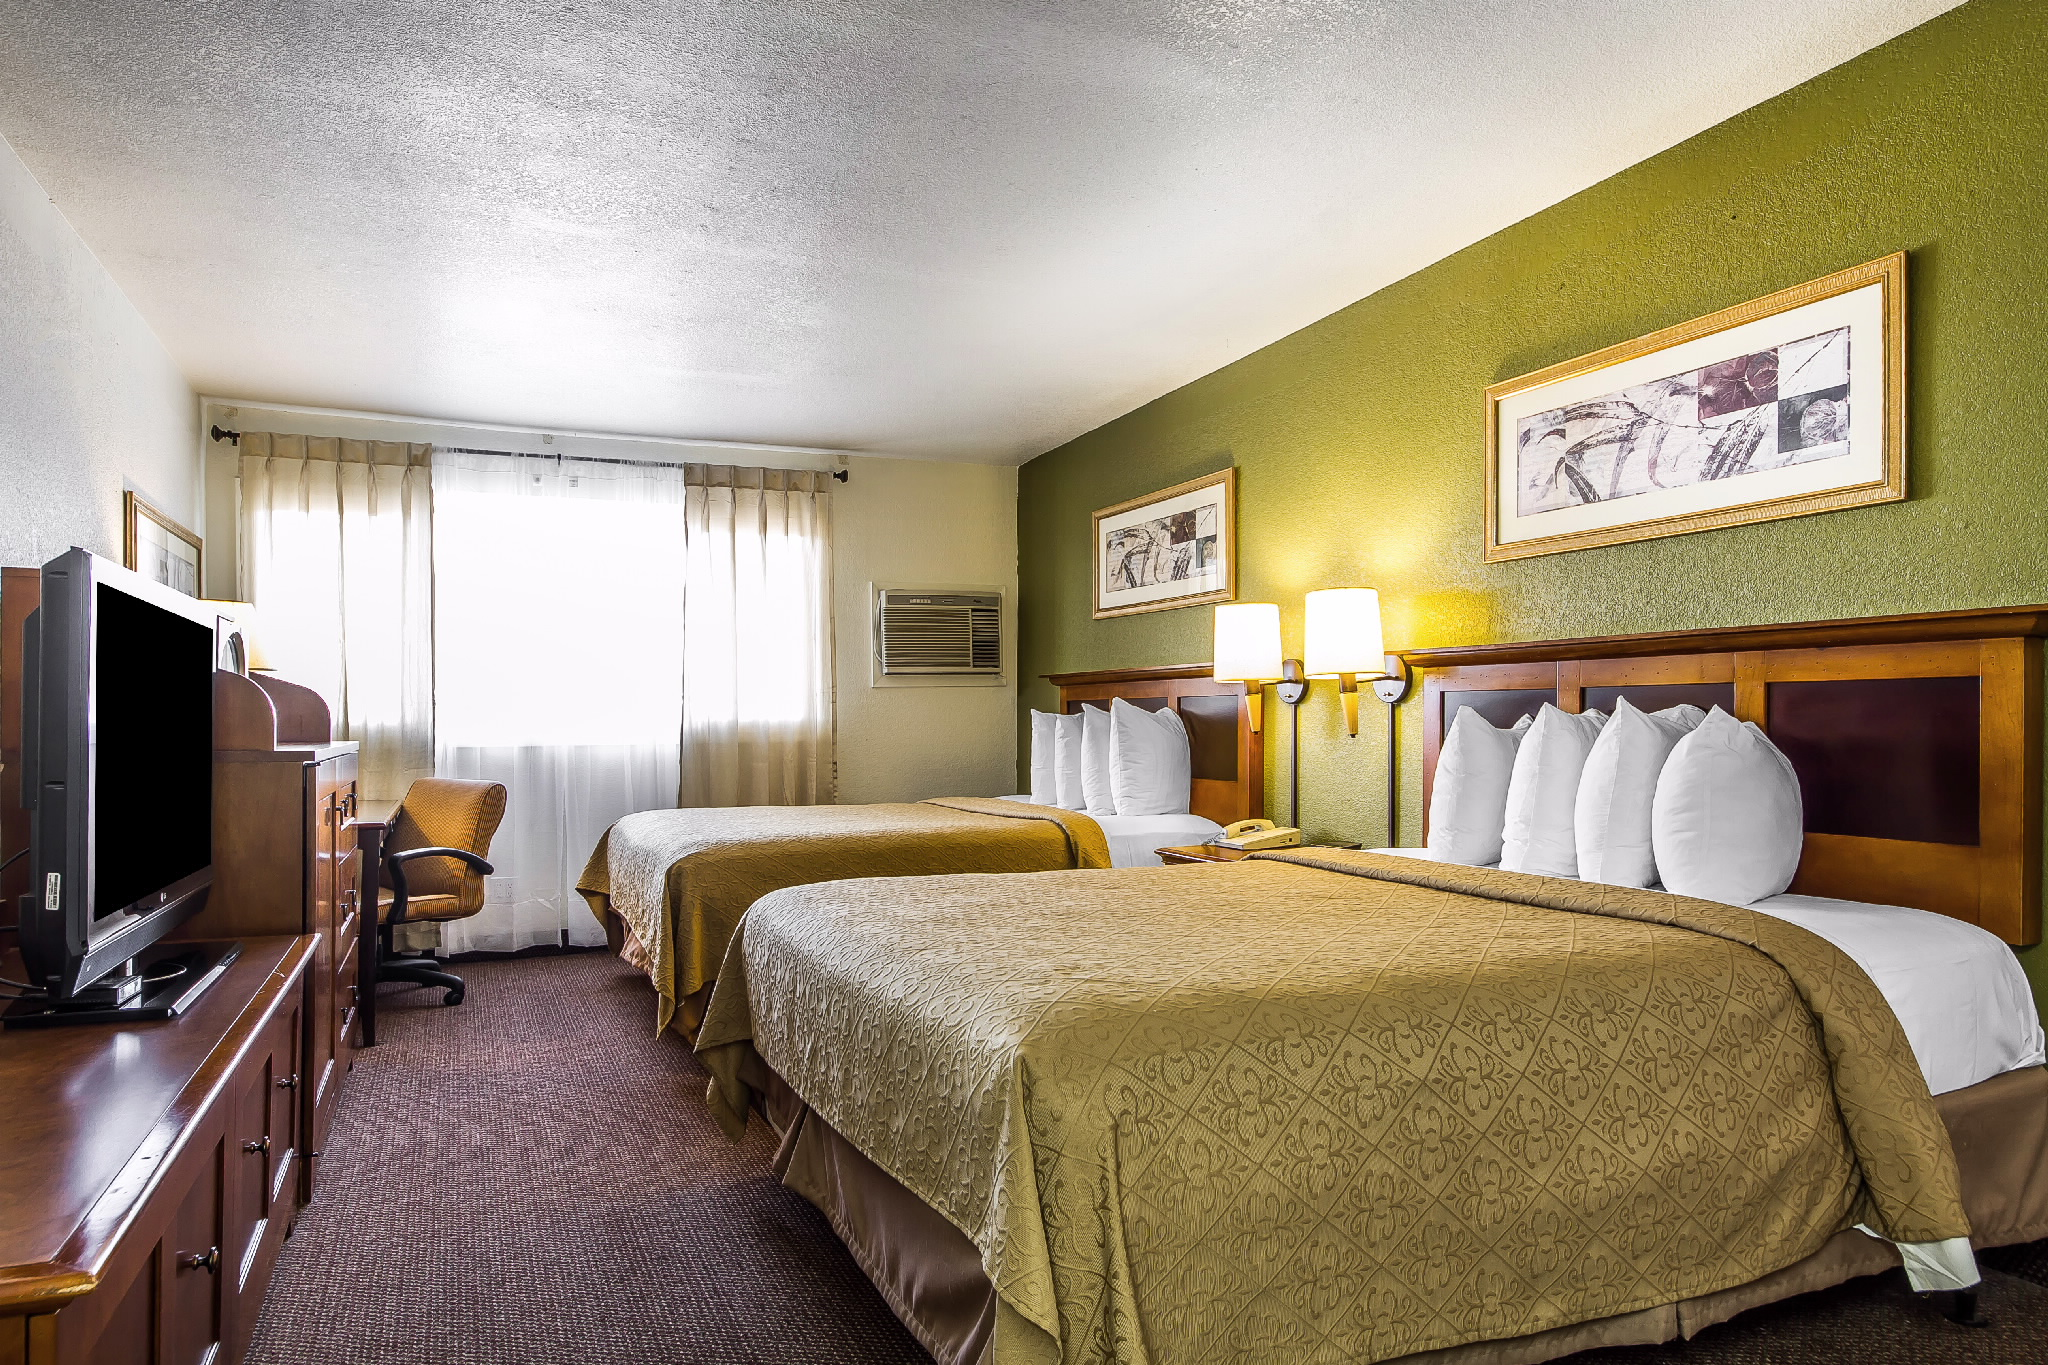 Quality Inn in Auburn on deutschviral.ml and earn Rewards nights. Collect 10 nights get 1 free*. Read 87 genuine guest reviews for Quality Inn/5(87).